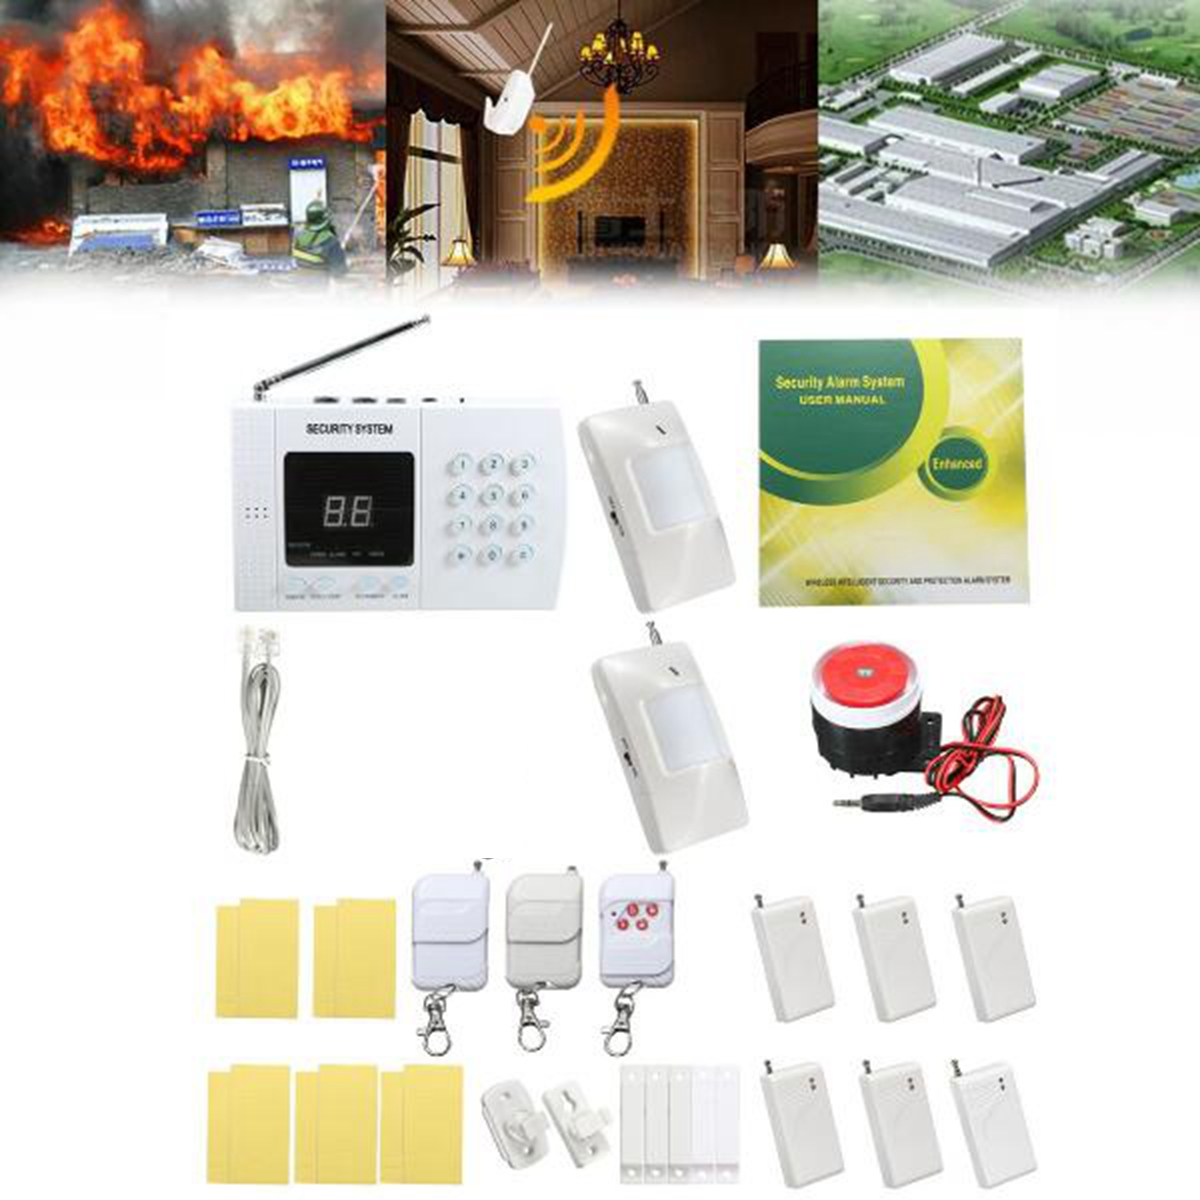 500ft Home Security Burglar Alarm System Auto Dialing Dialer Zones Wireless PIR Prevent Theft Detect Gas Leakage Wall Mount chuangkesafe wholesale or retail new wireless 99 zones pir home security pstn burglar alarm system auto dialing easy diy